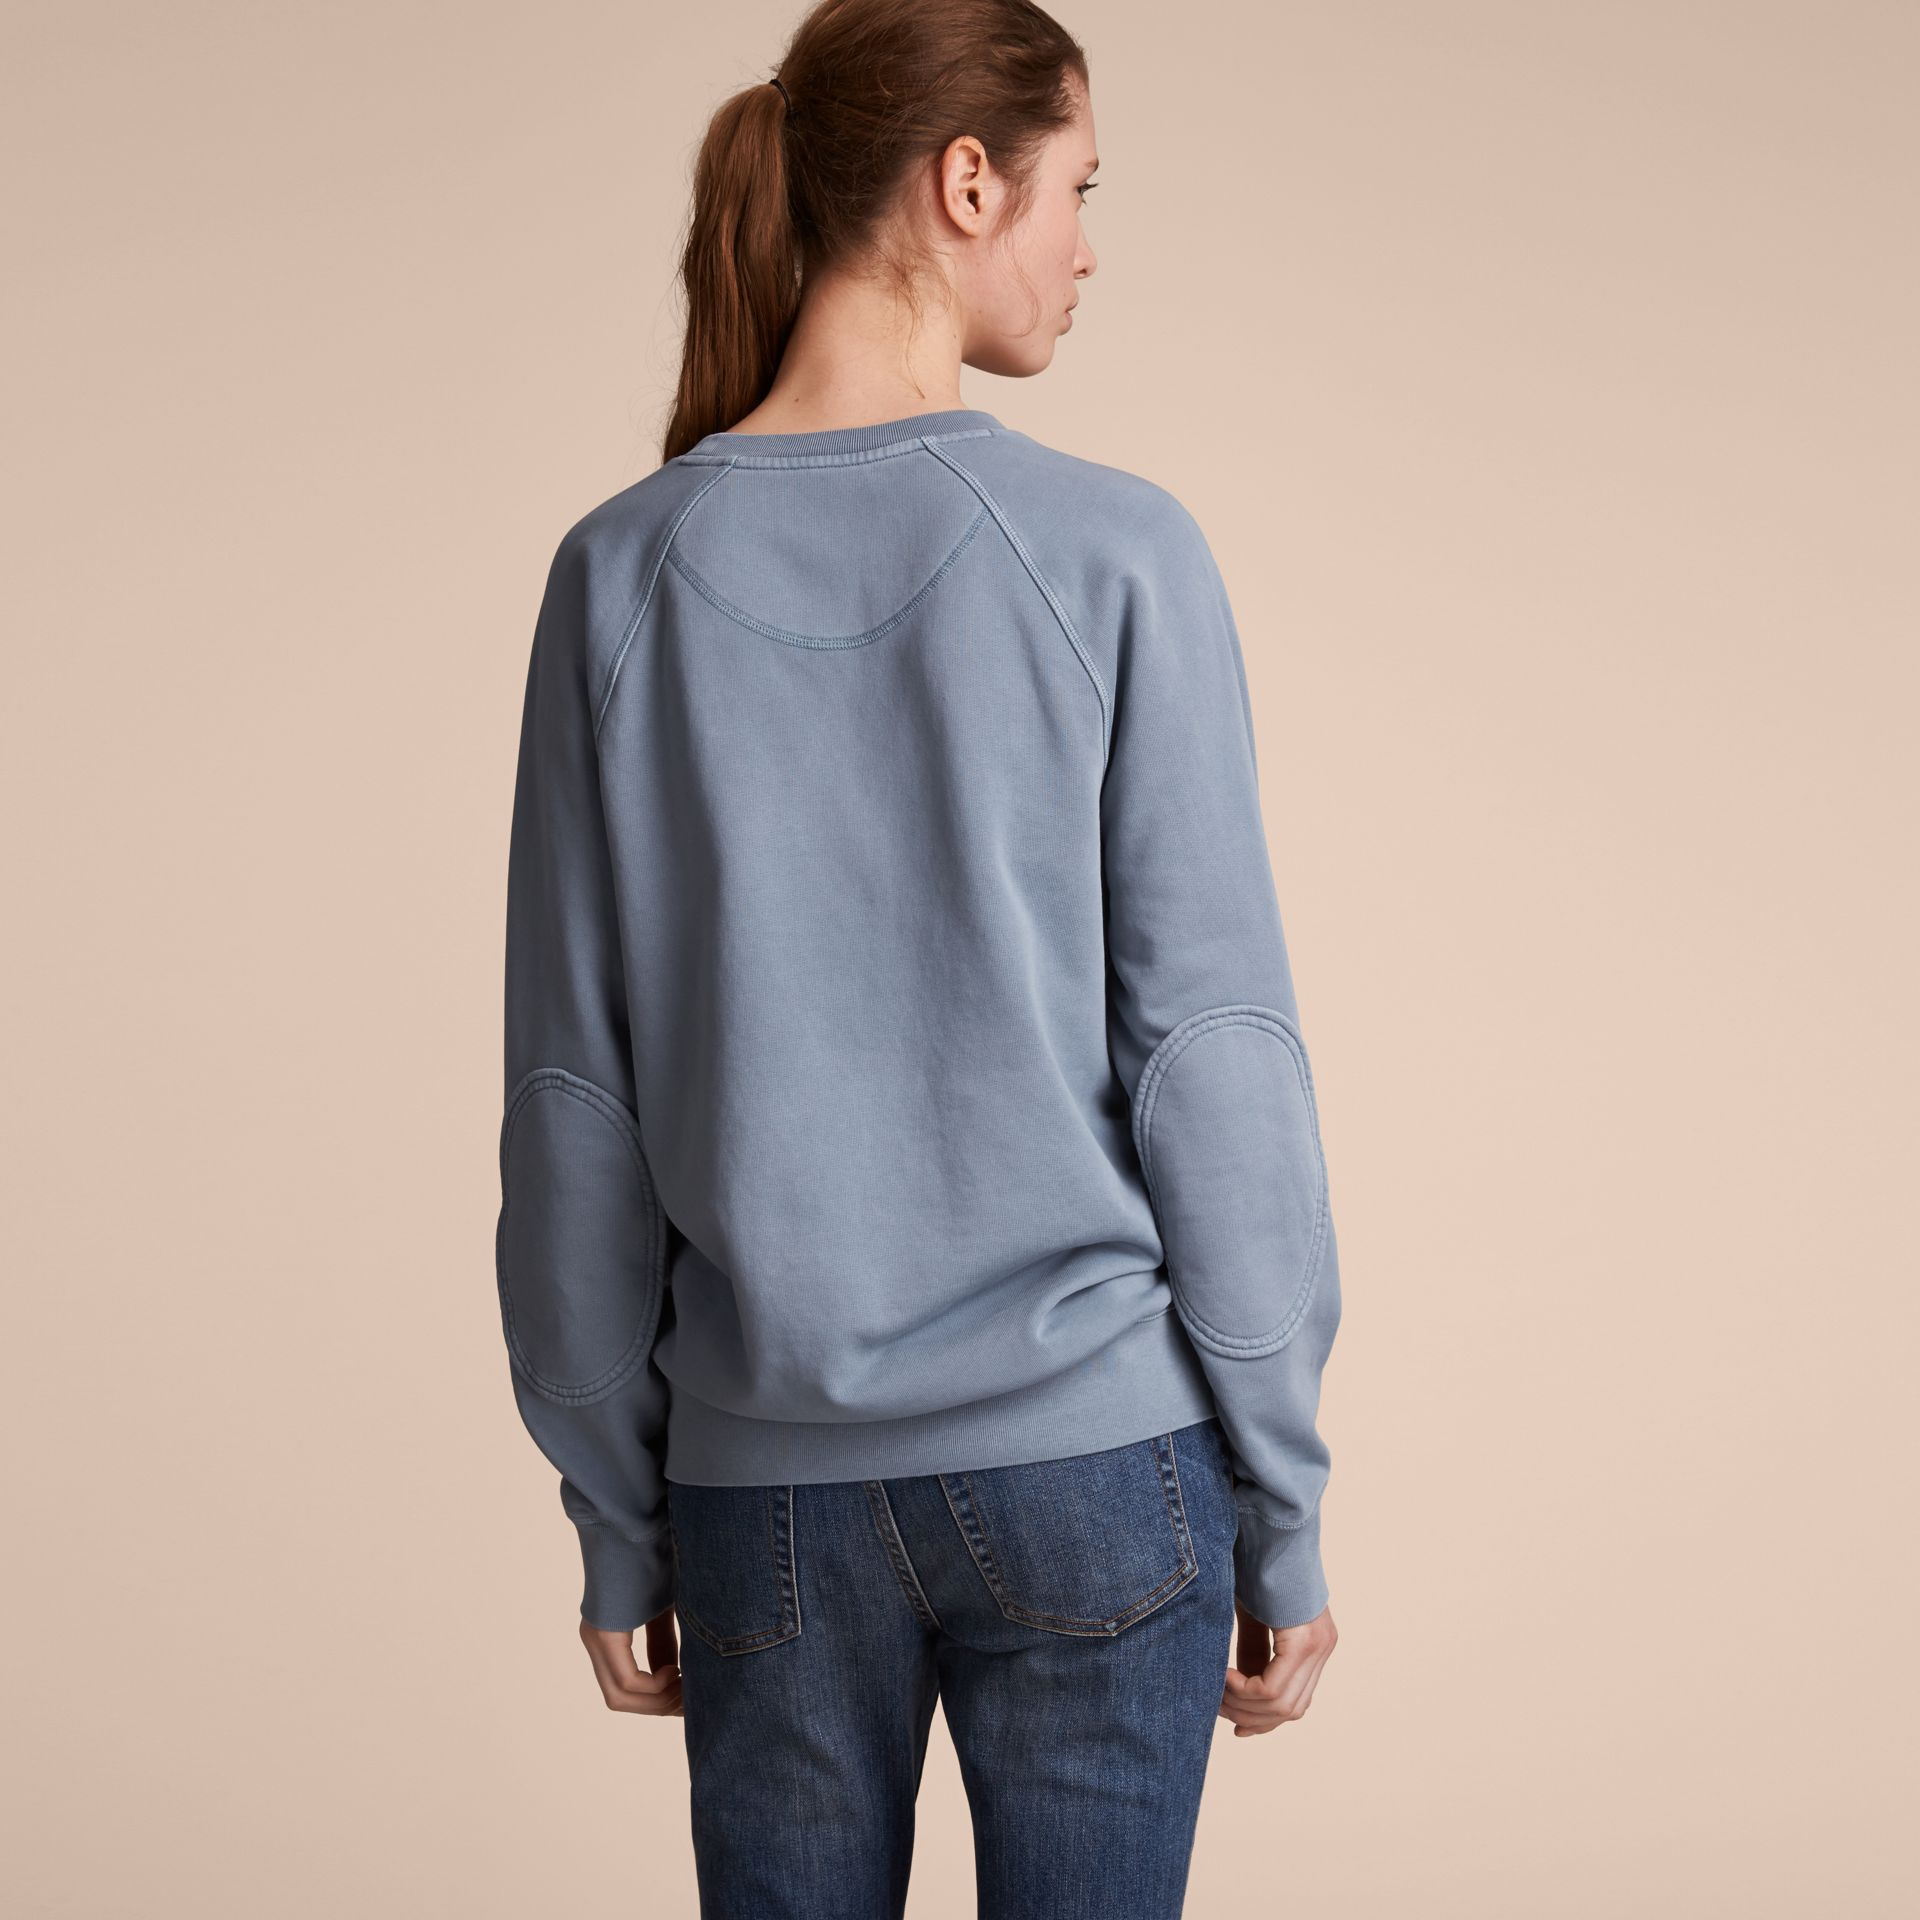 Unisex Pigment-dyed Cotton Oversize Sweatshirt in Dusty Blue - Women | Burberry - gallery image 7